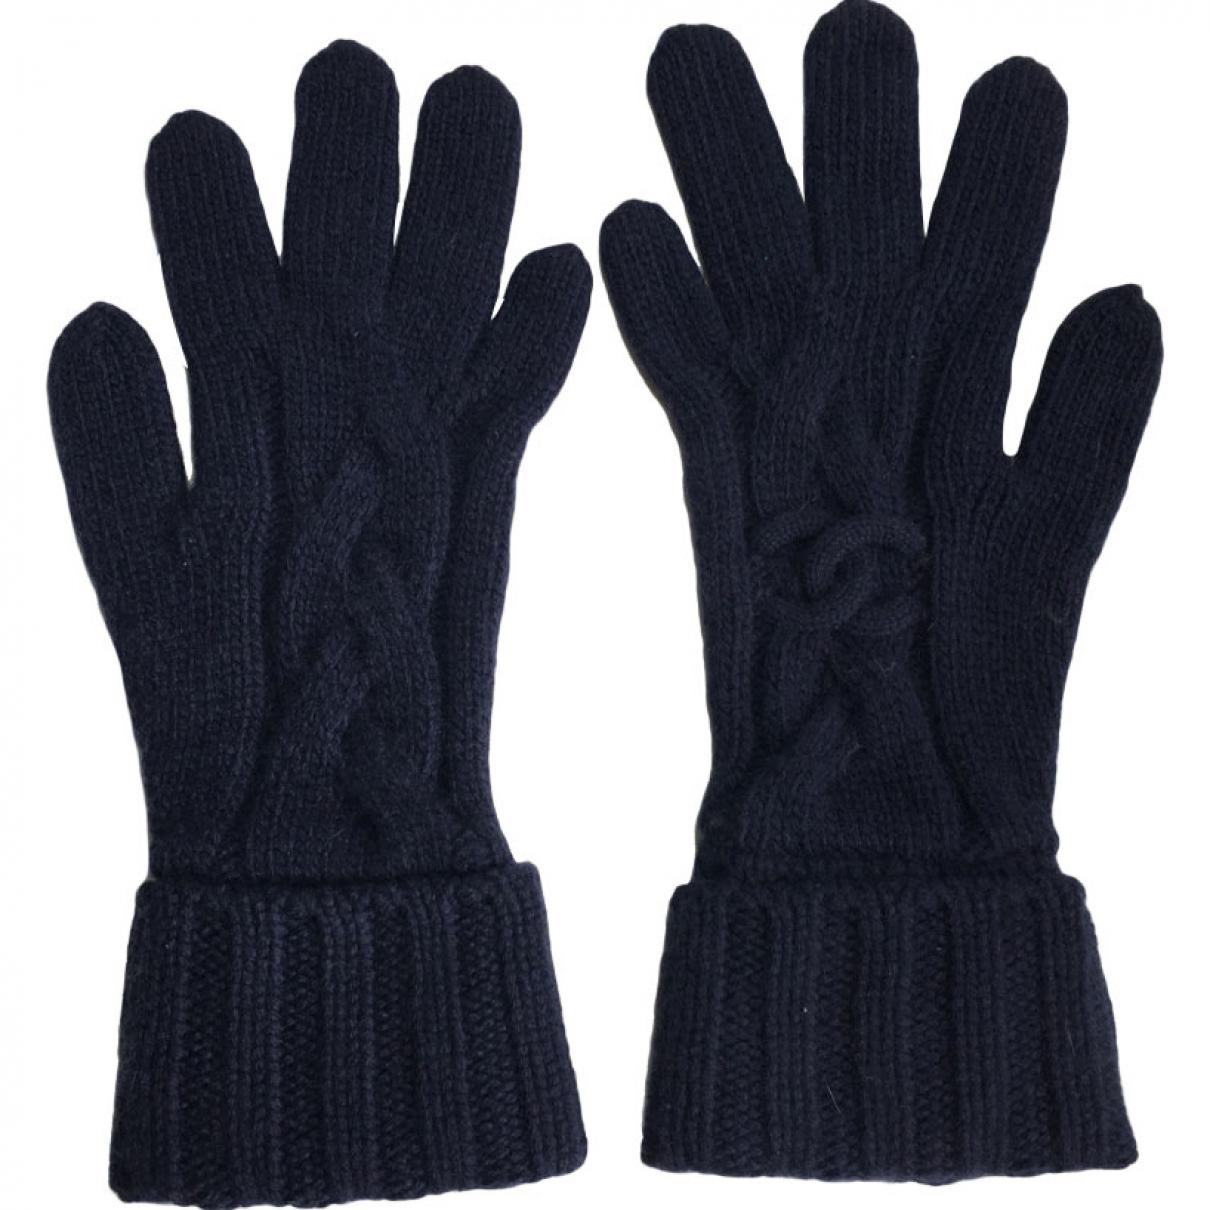 c0b03a39 Chanel Pre-owned Cashmere Gloves in Blue - Lyst